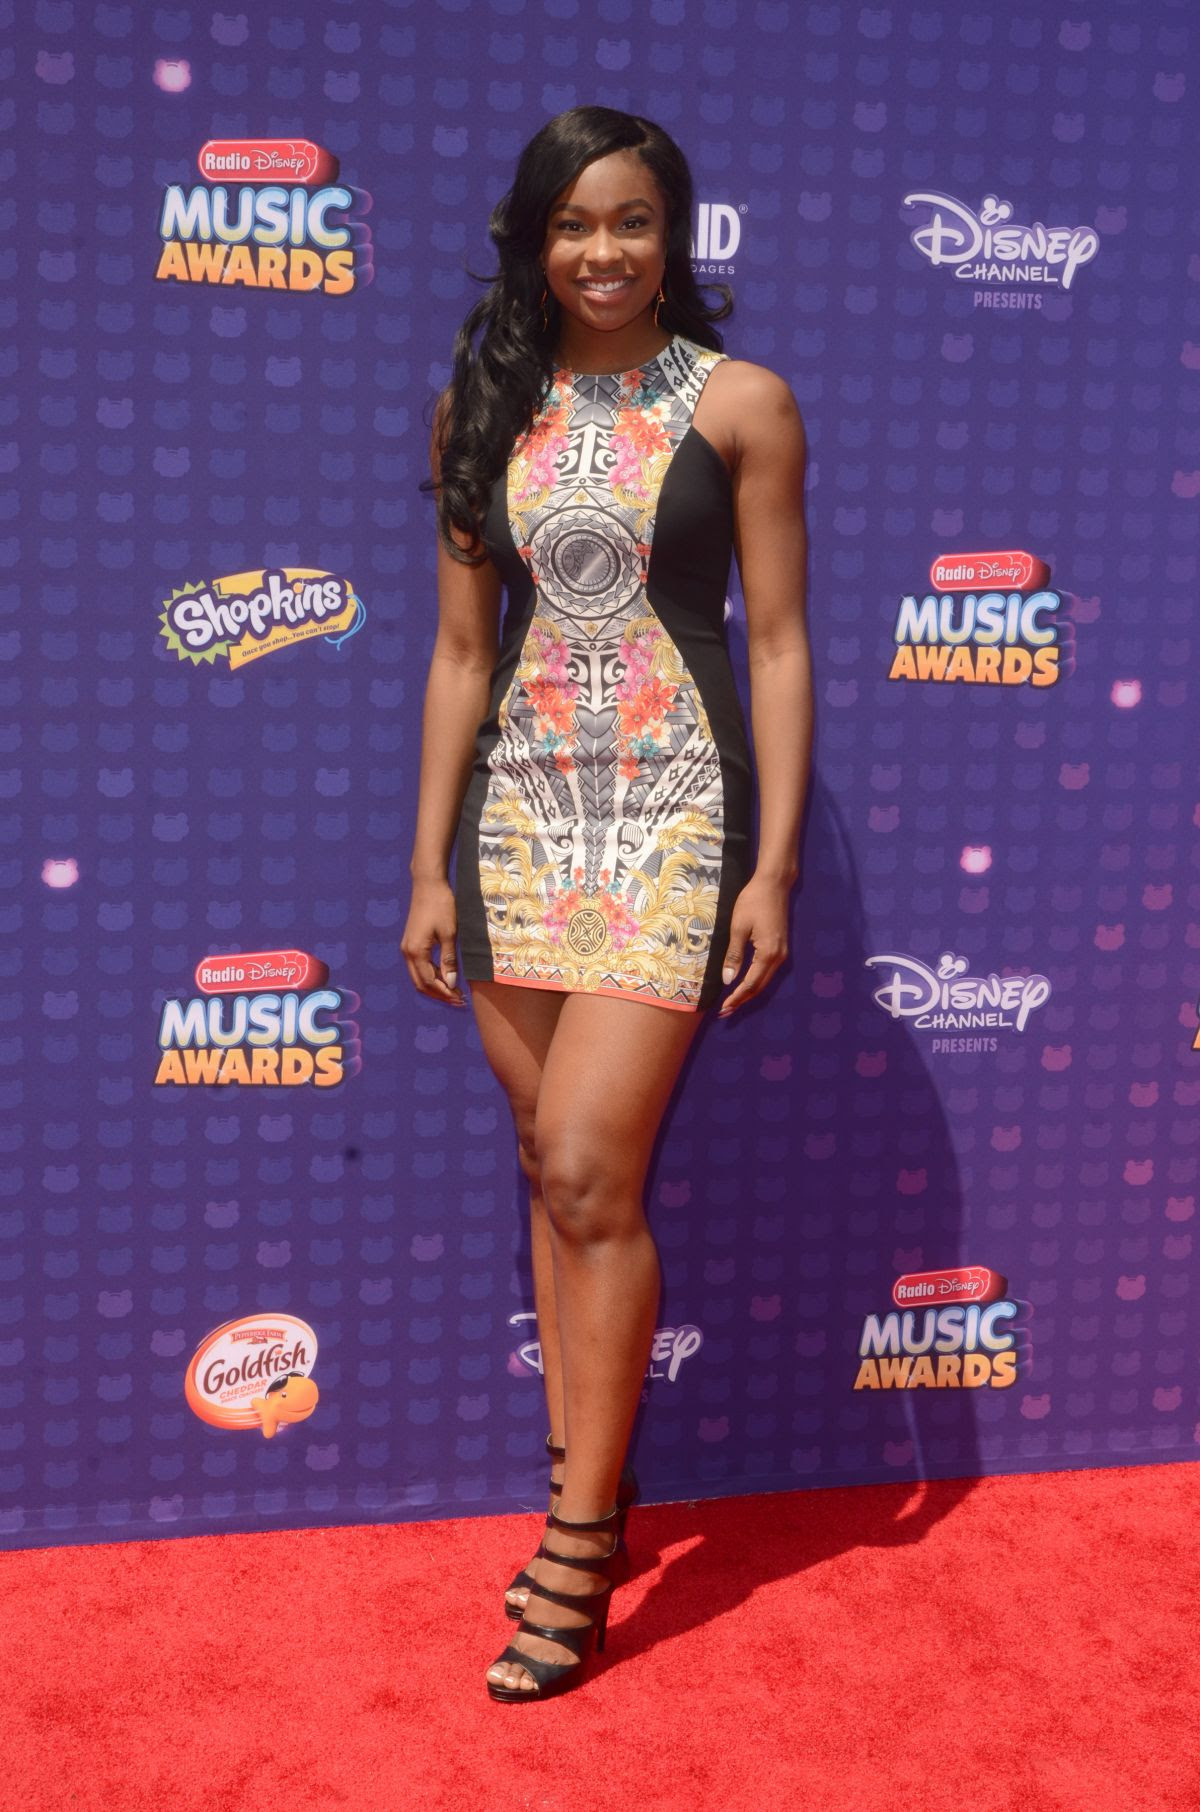 COCO JONES at 2016 Radio Disney Music Awards in Los Angeles 04/30/2016